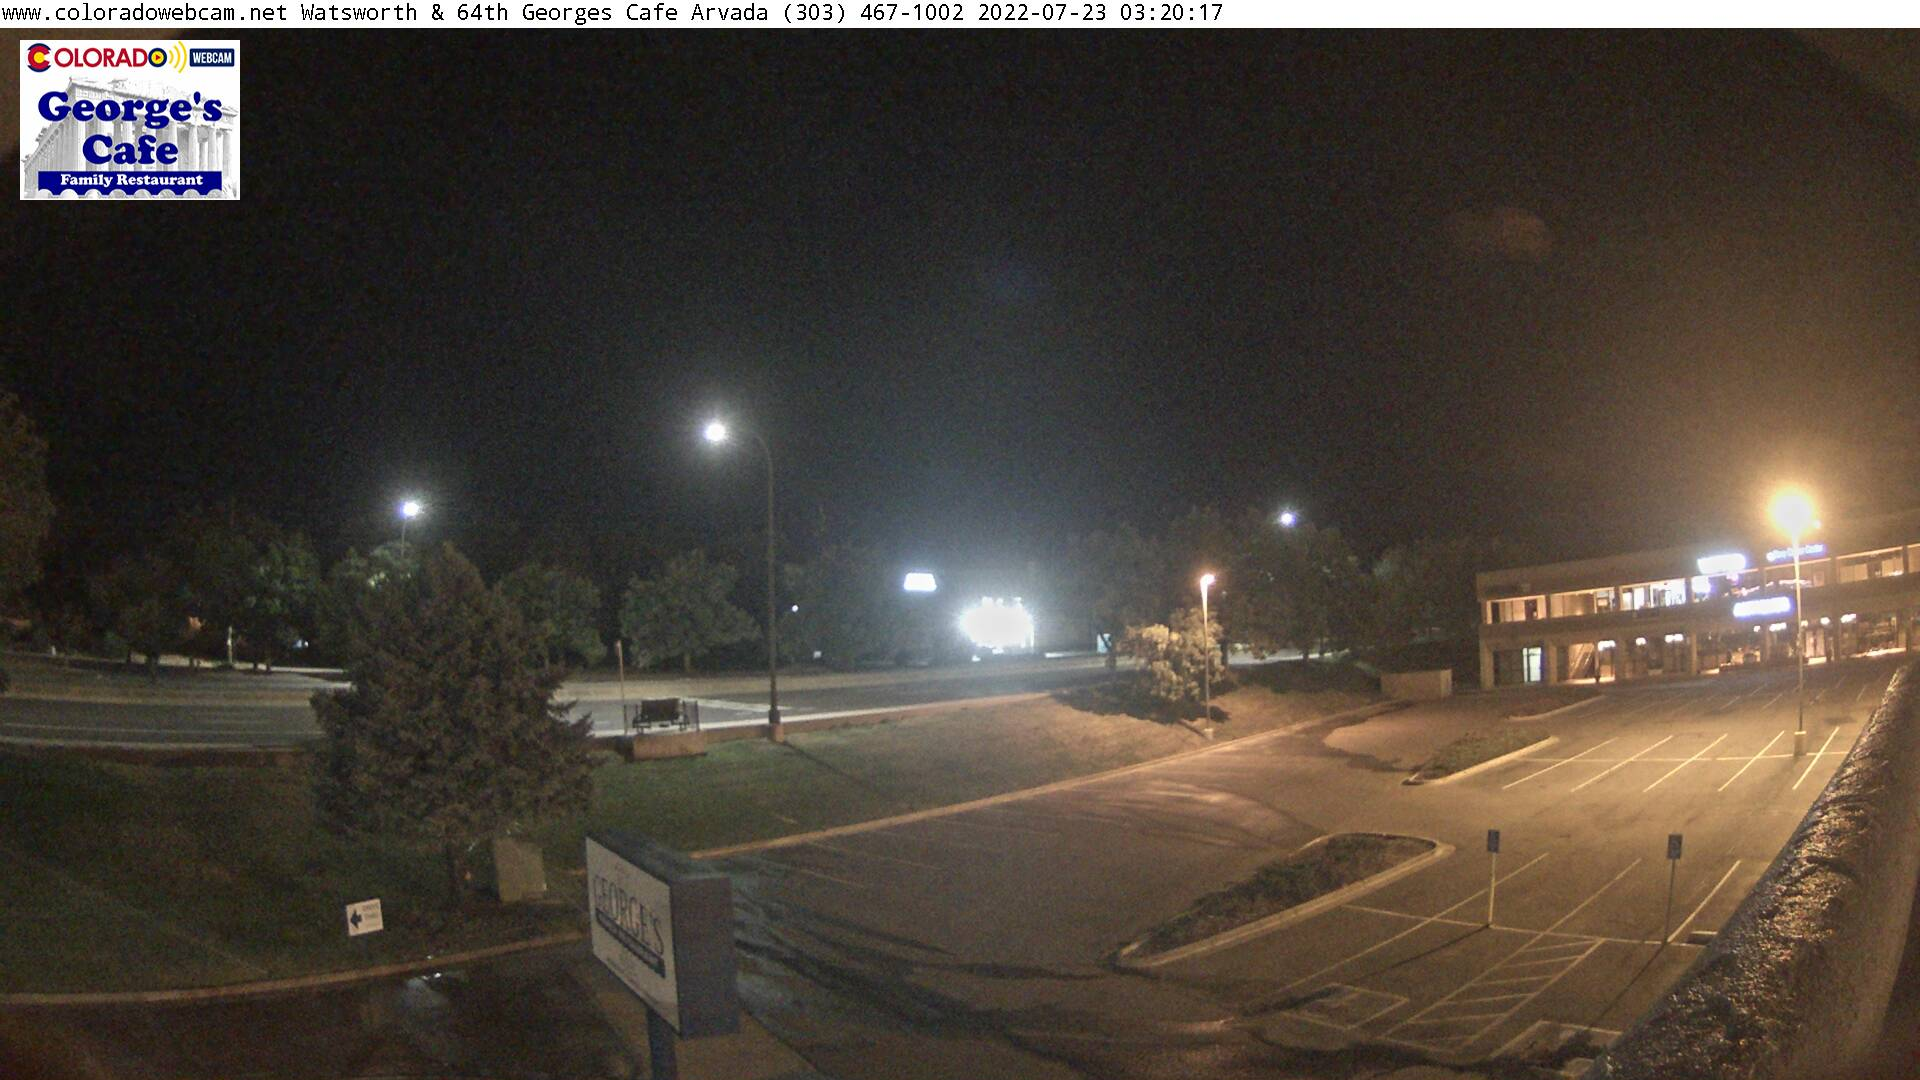 Arvada Wadsworth & 64th Georges Cafe Webcam